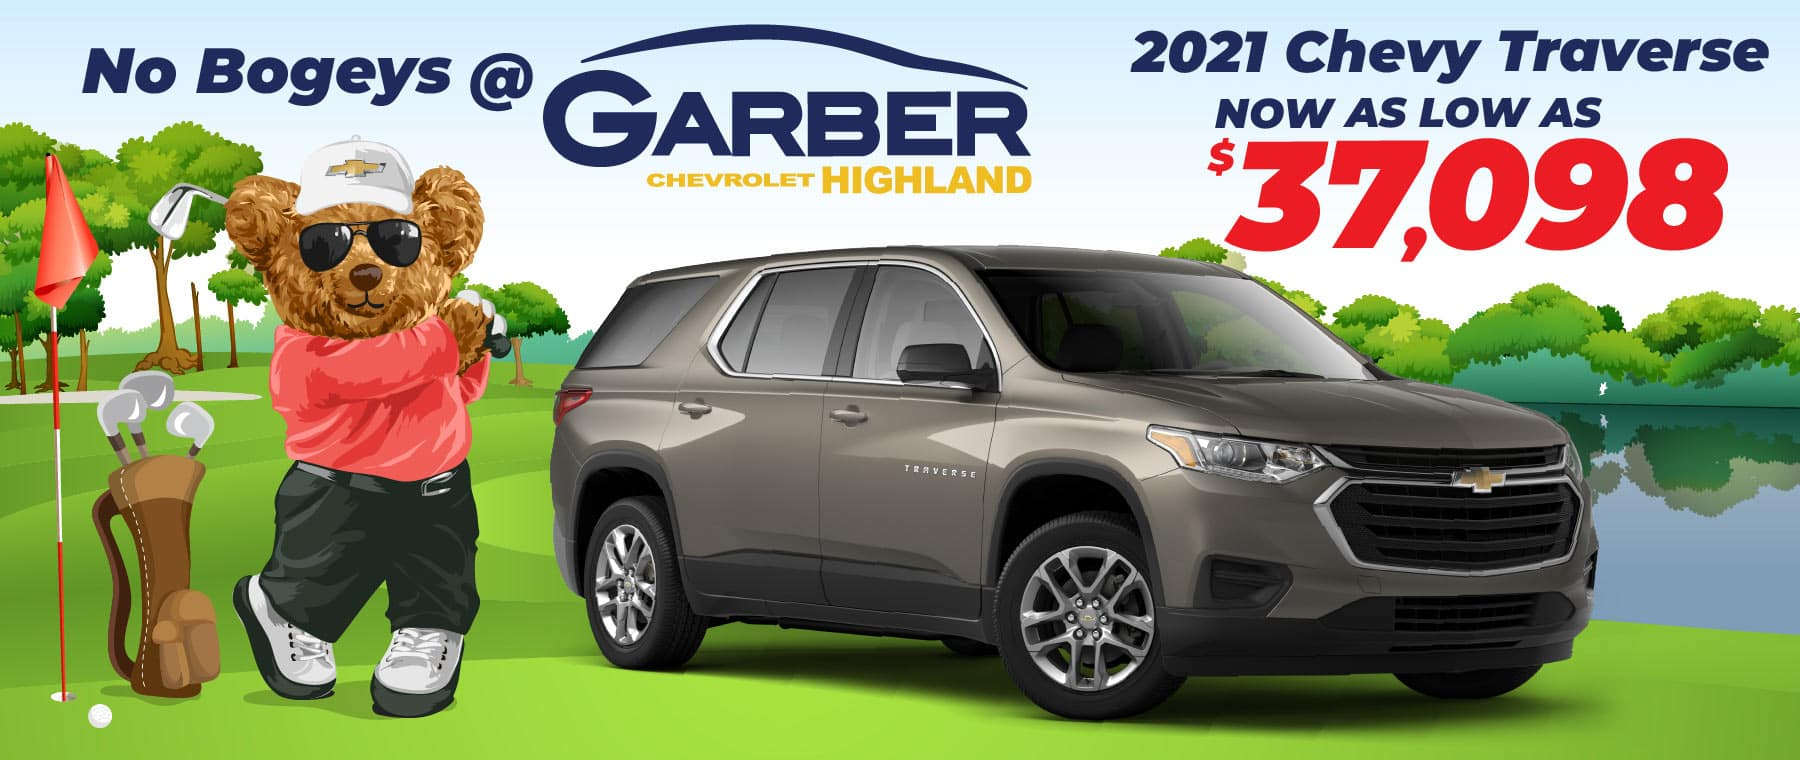 2021 Chevy Traverse - Now as low as $37,098